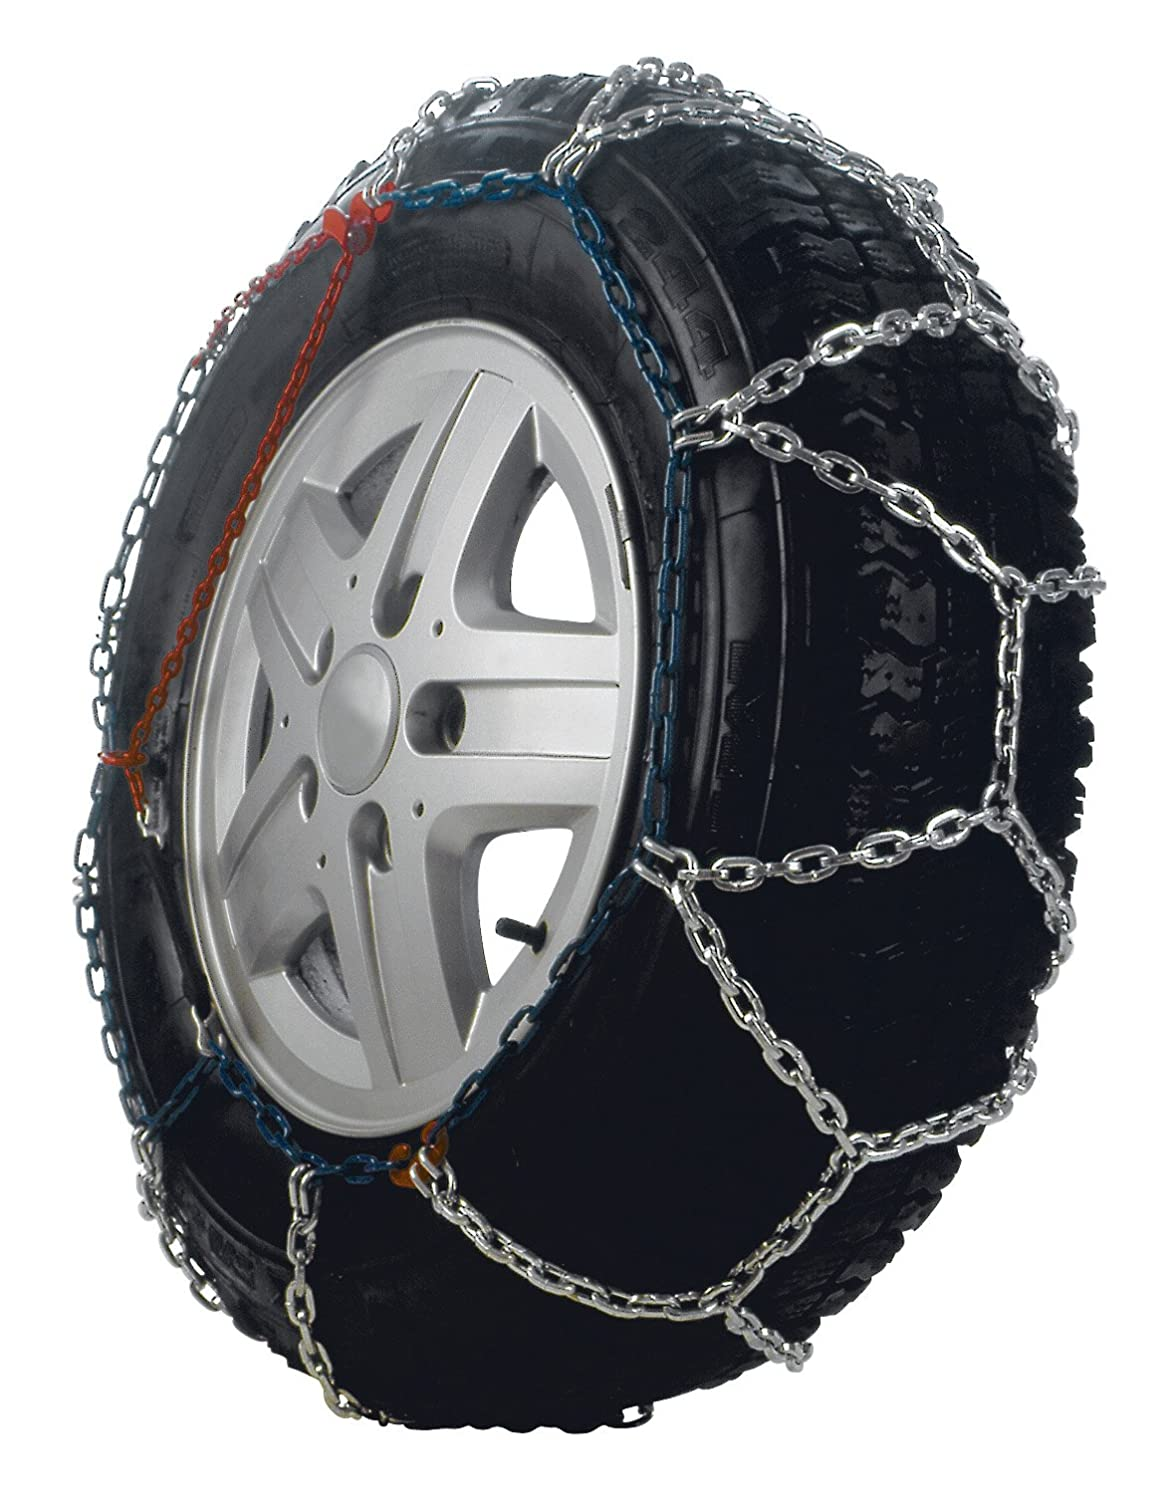 Bottari 68011 'Master' Heavy Duty 16mm Snow Chains for 4x4 MPV's and Van, TUV and ONORM approved, size 260